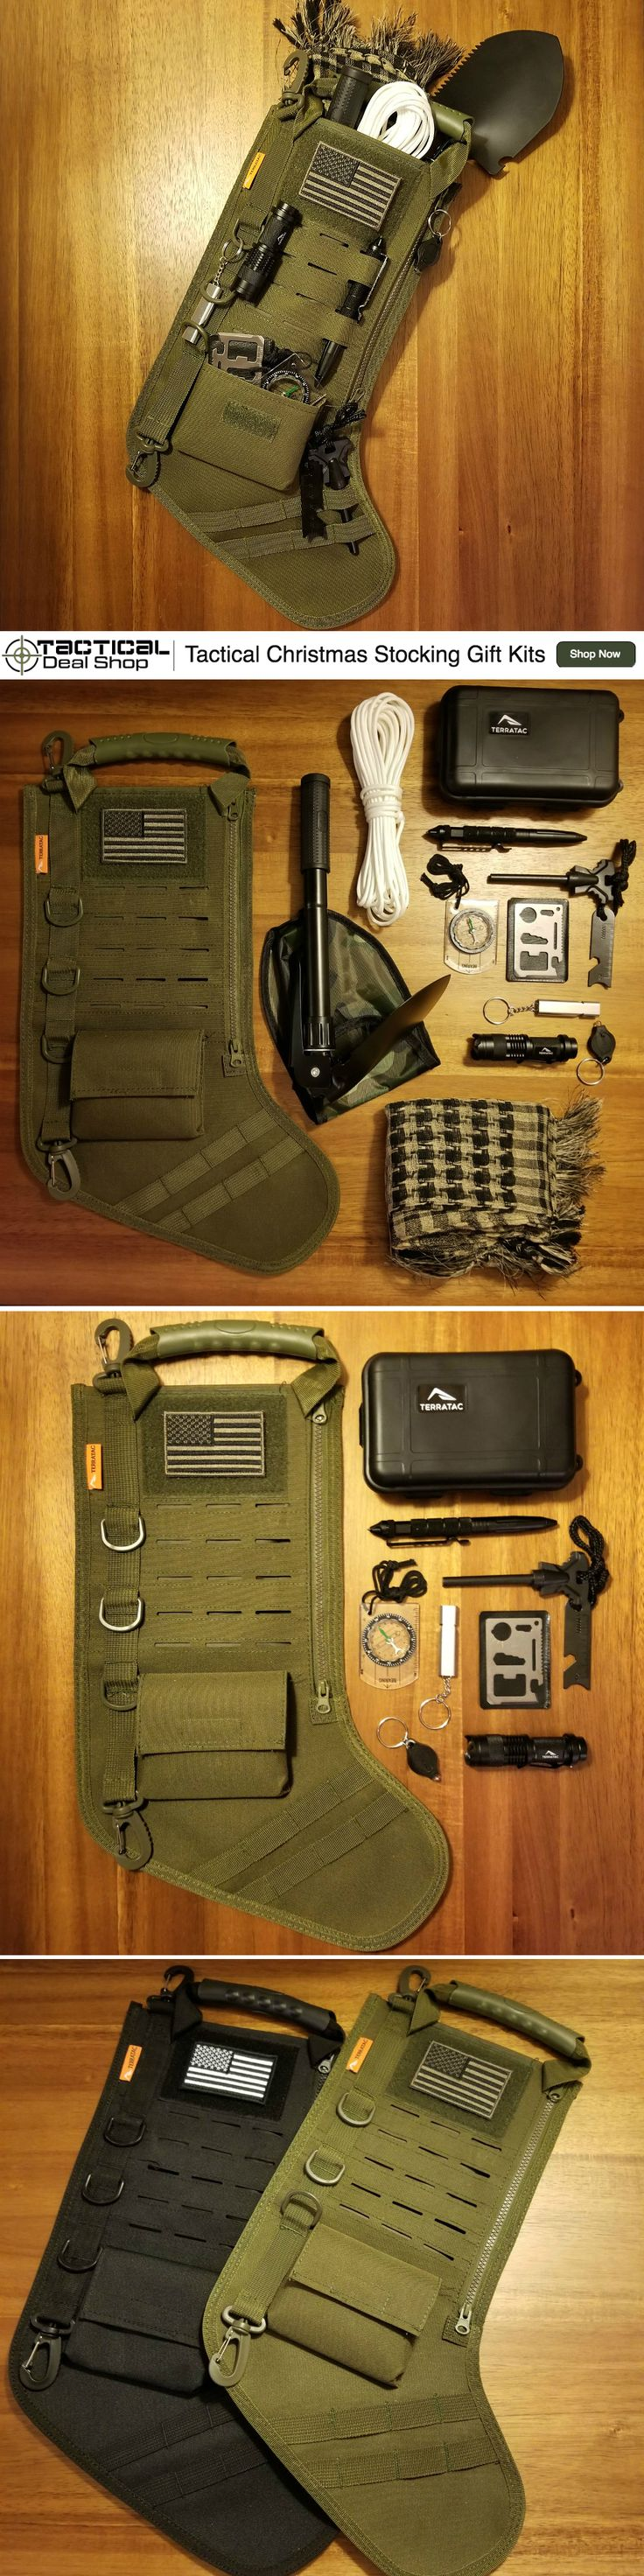 Need a Gift Idea? These Tactical Christmas Bundles are Perfect for the Soldier or Outdoor Enthusiast in the Family!  Save Up To 30% When You Shop Today ➡️ tacticaldealshop.com  Share or Tag a Friend Who Would Love These!  #tactical #tacticalgear  #surviva